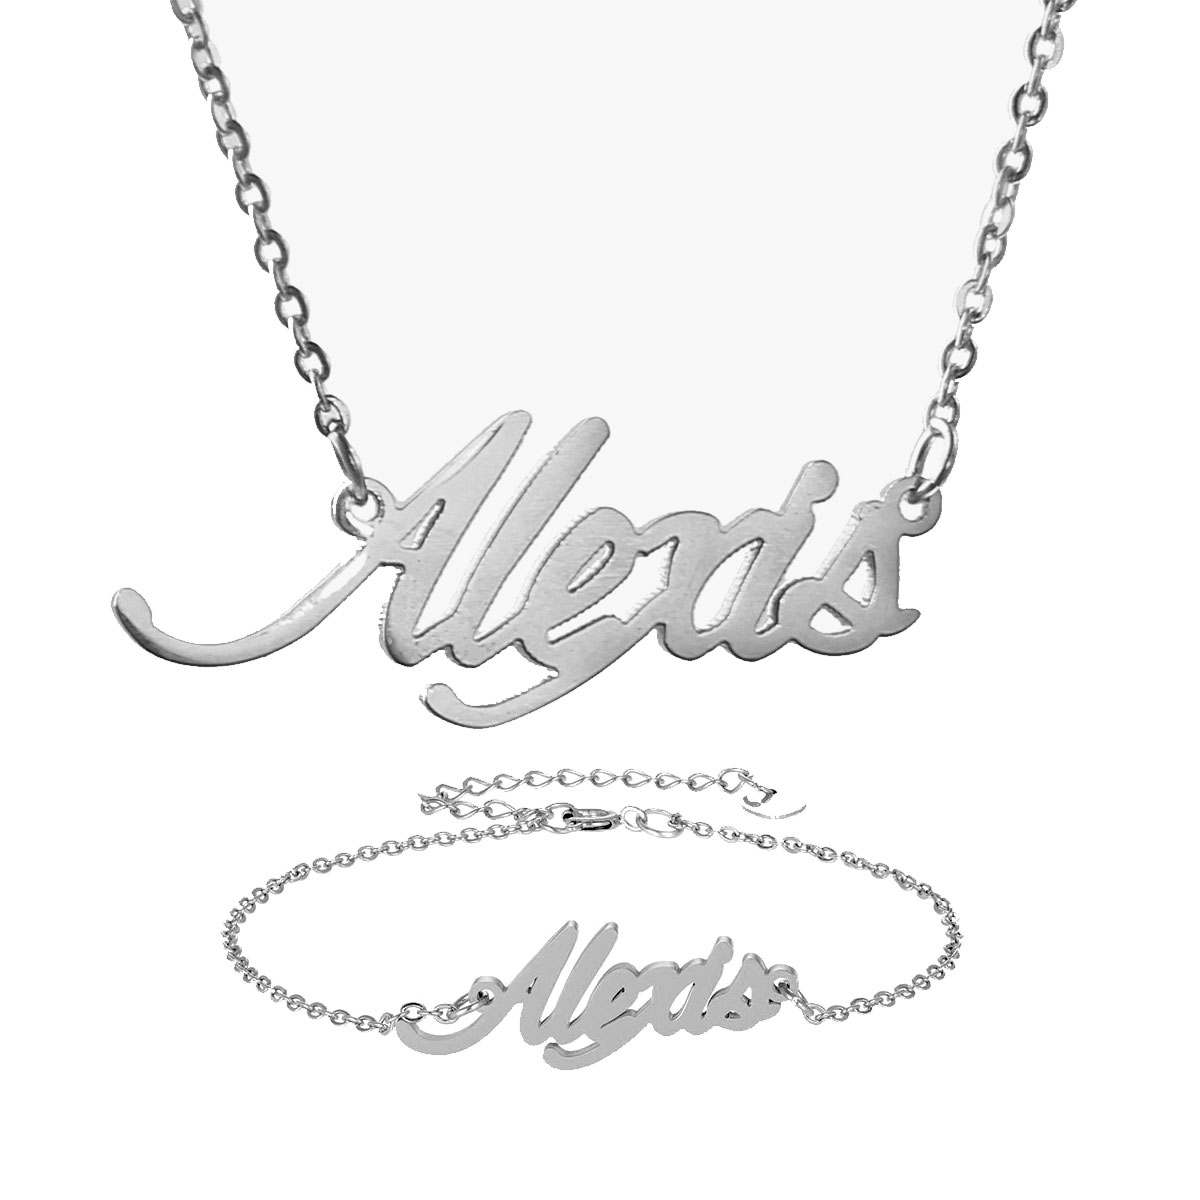 """Fashion Stainless Steel Personalized Name Necklace + Bracelet Set """" Alexis """" Script Letter Gold Choker Chain Necklace Pendant Nameplate Gift"""